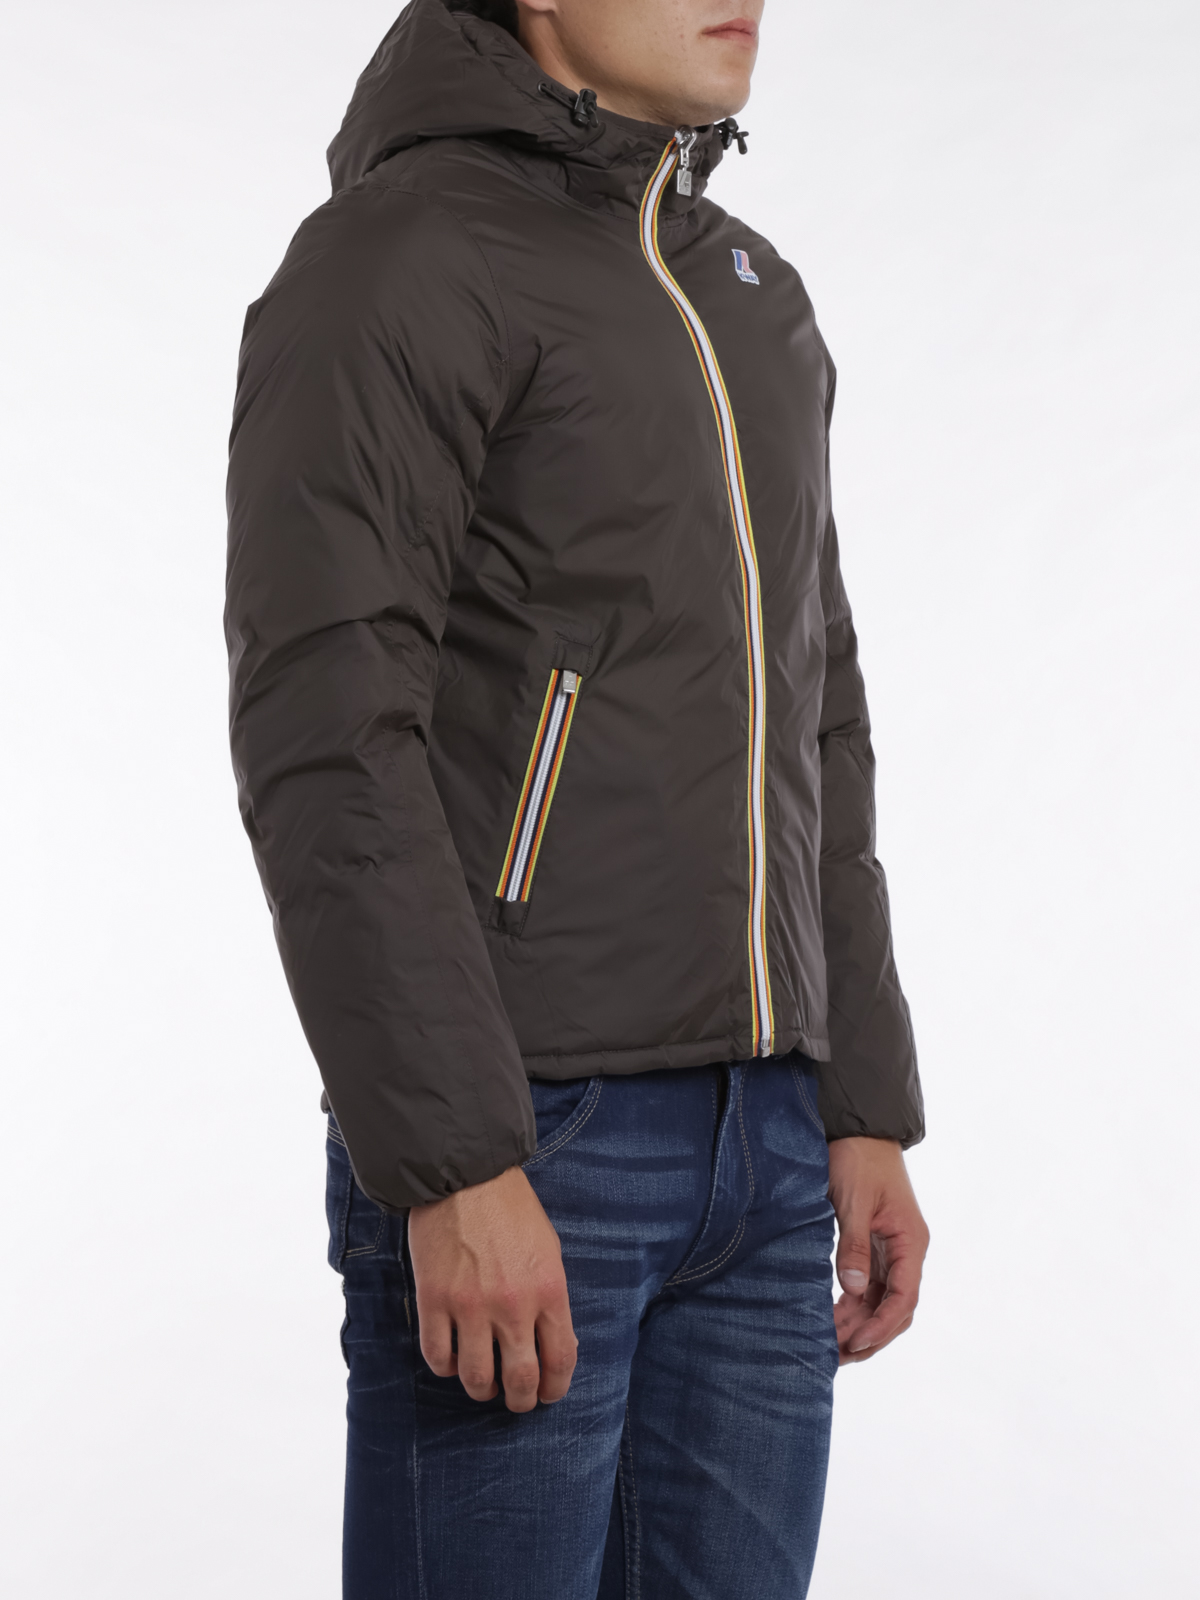 3fb79d71106ca6 iKRIX-k-way-padded-jackets--jacques-thermo-plus -jacket-00000054444f00s003.jpg